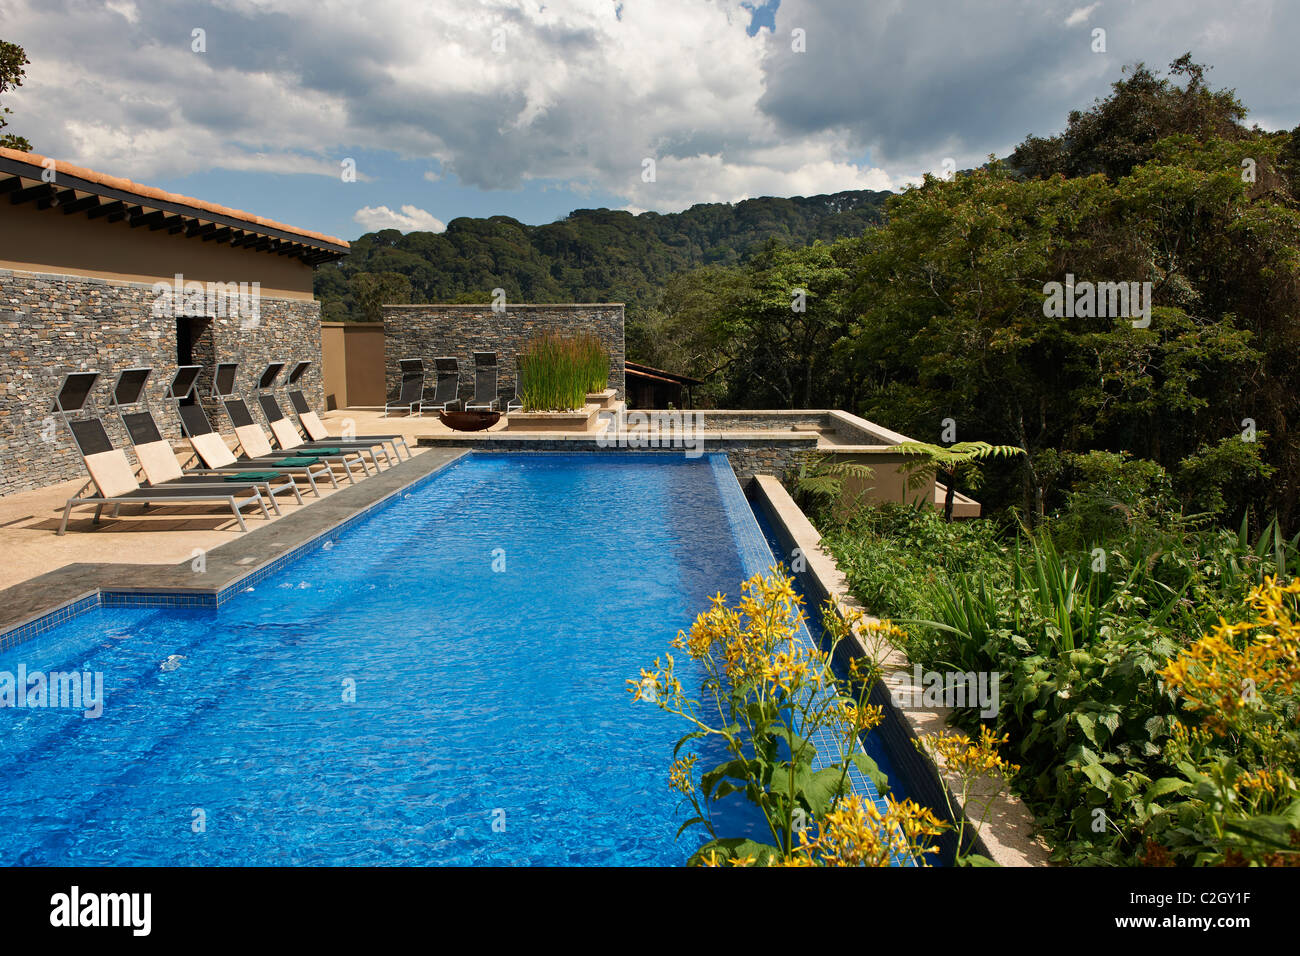 Swimming Pool In Nyungwe Forest Lodge Parc National De Nyungwe Stock Photo Royalty Free Image